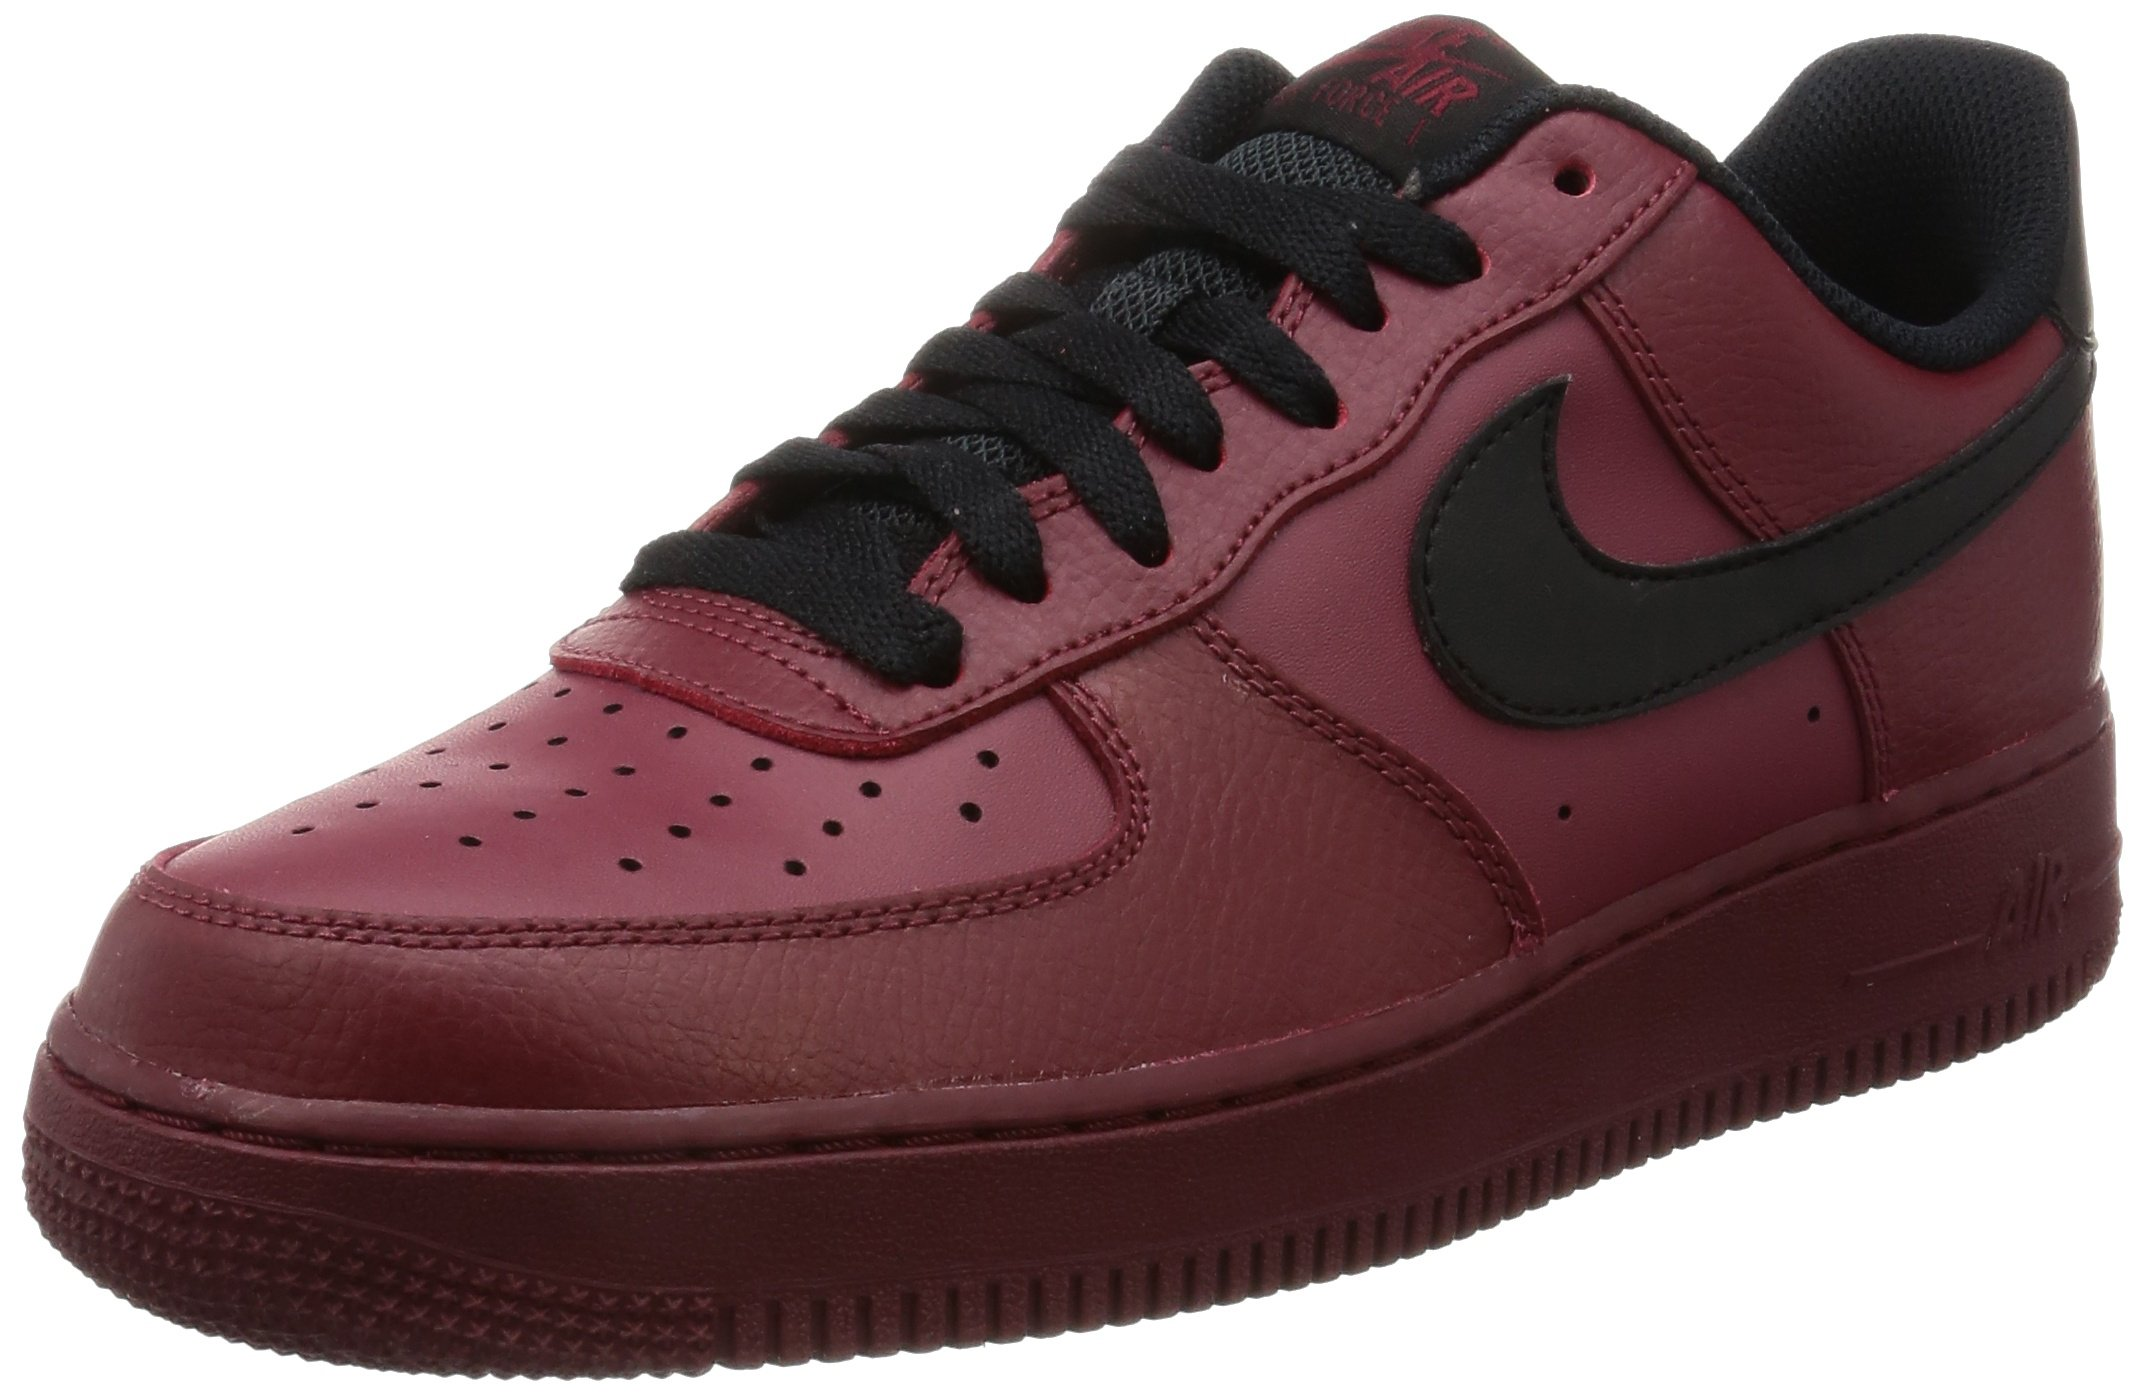 Nike Men's Air Force 1 Low '07 Basketball Shoe Team Red/Black 8.5